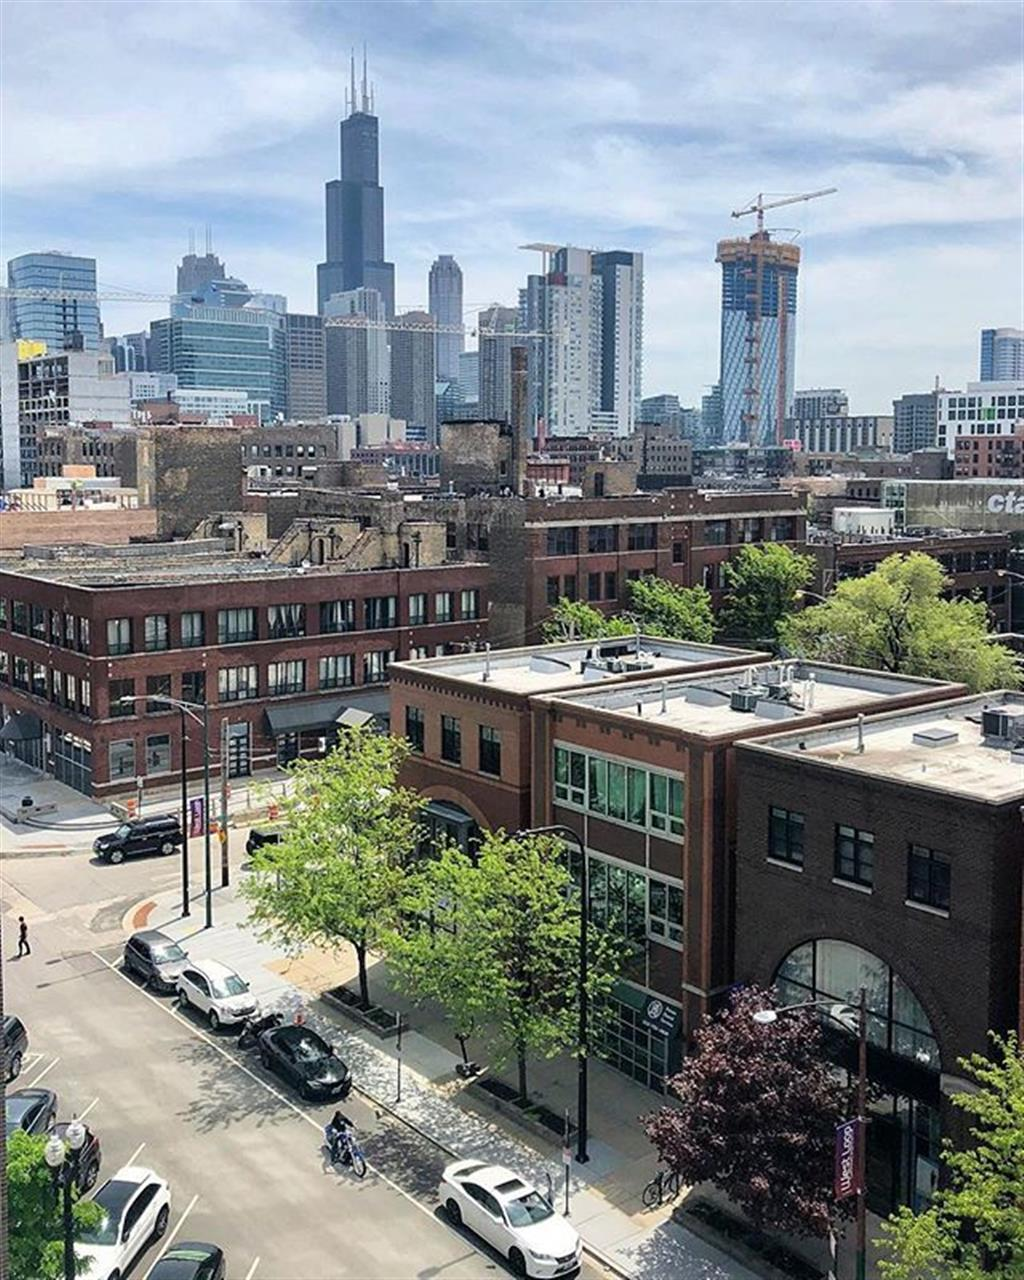 Today weÔÇÖre in ChicagoÔÇÖs Near West side attending a #Military event. Hoping to introduce people to Baird & WarnerÔÇÖs Military on the Move program! .. .. #bairdwarner #militaryonthemove #bunkerlabs #realestate #chicagorealestate #westloop #westlooprealestate #militaryrelocation #west #google #leadingrelocal #brownstone #searstower #skyline #sping #weathet